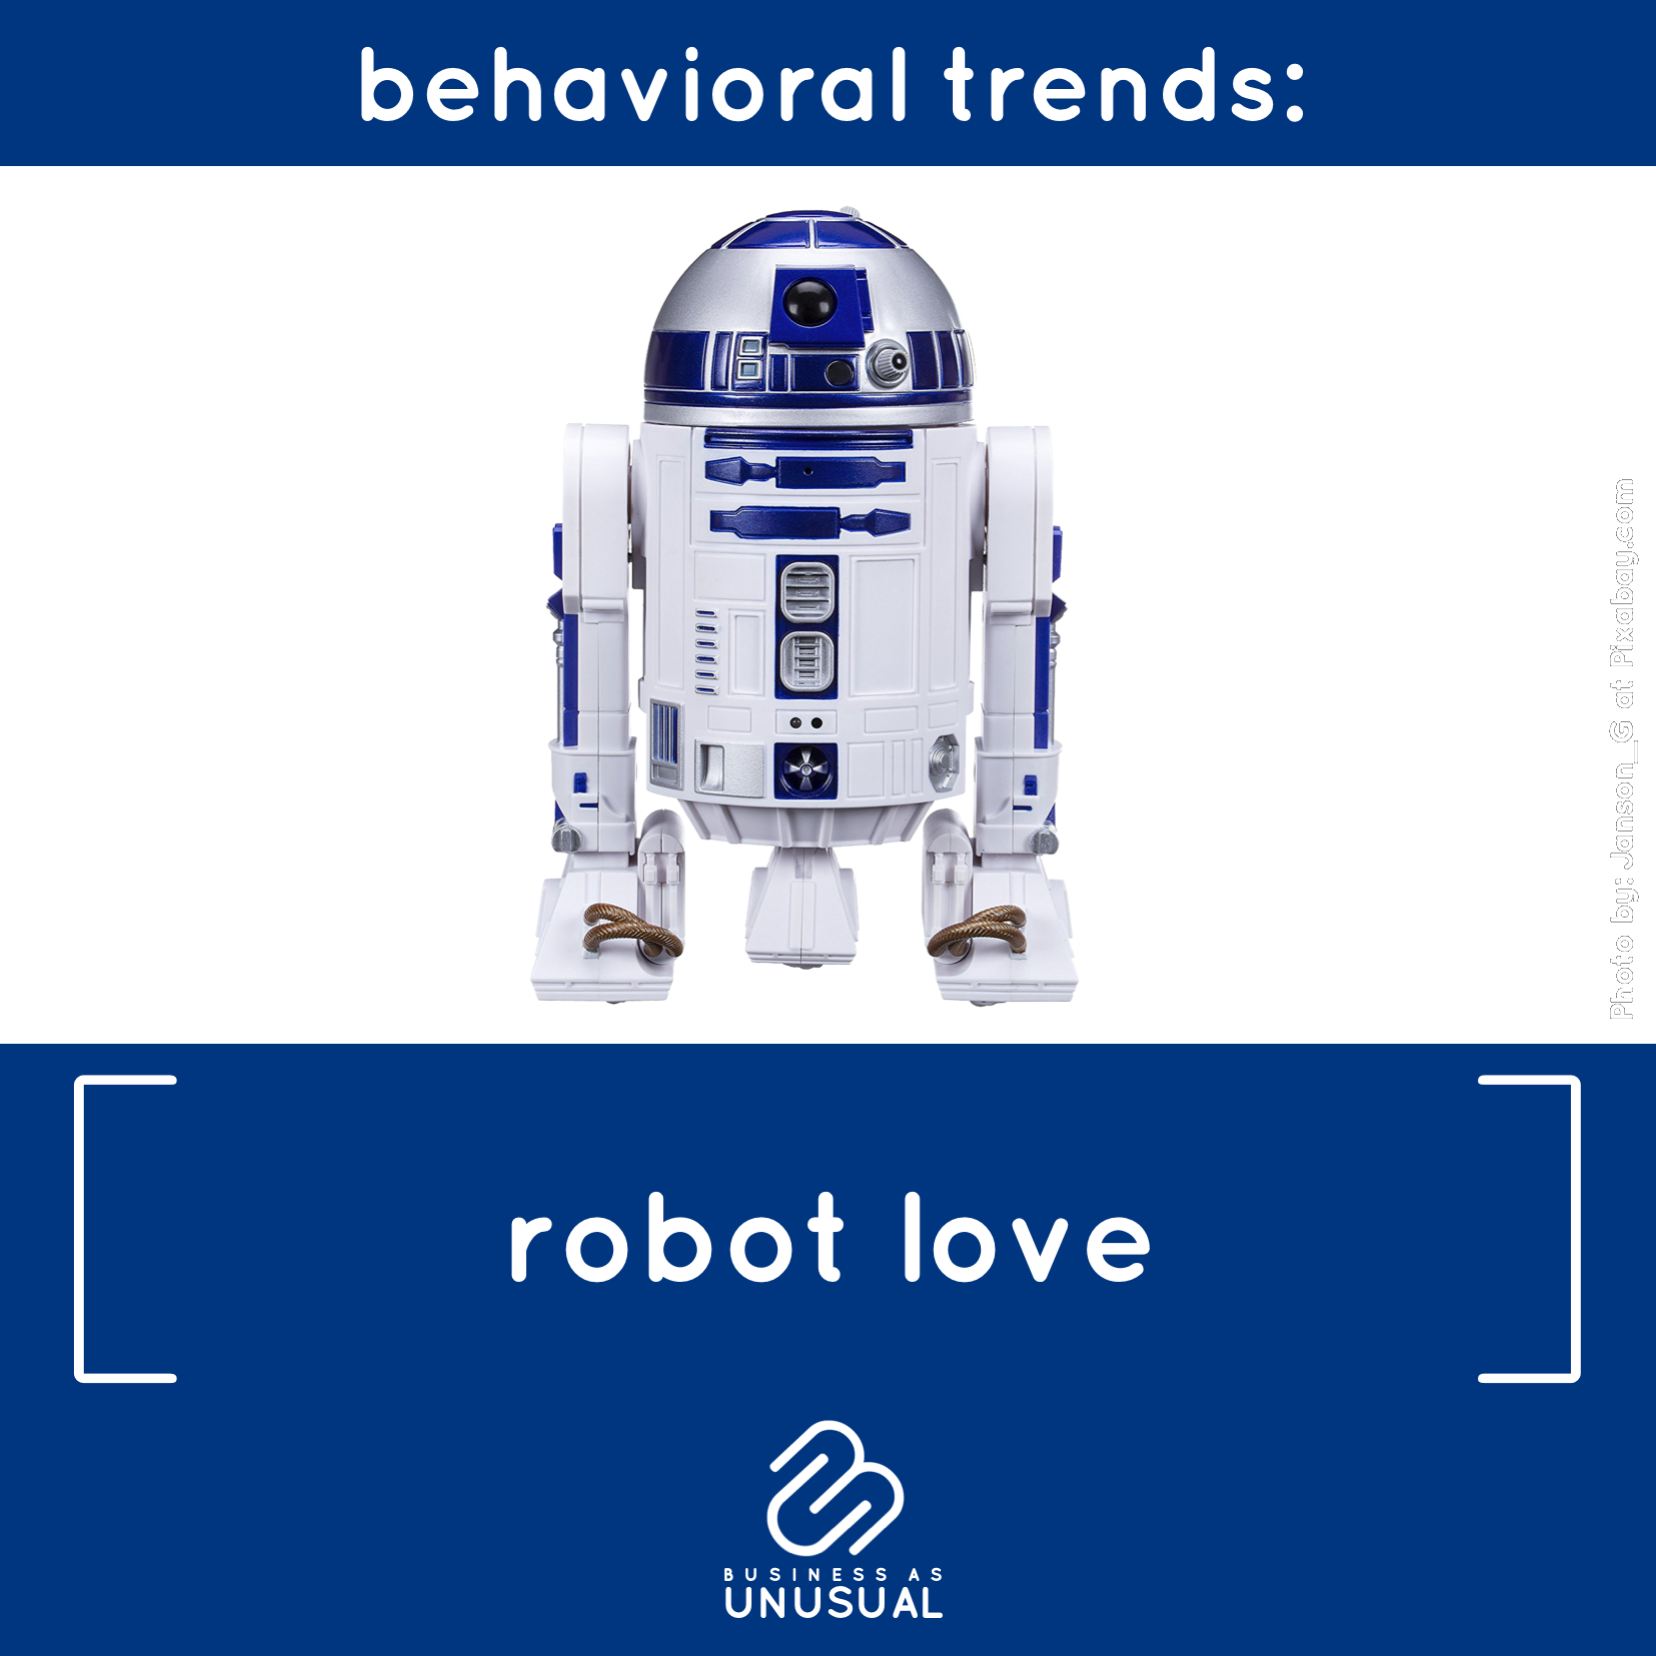 Behavioral Trends: Robot Love